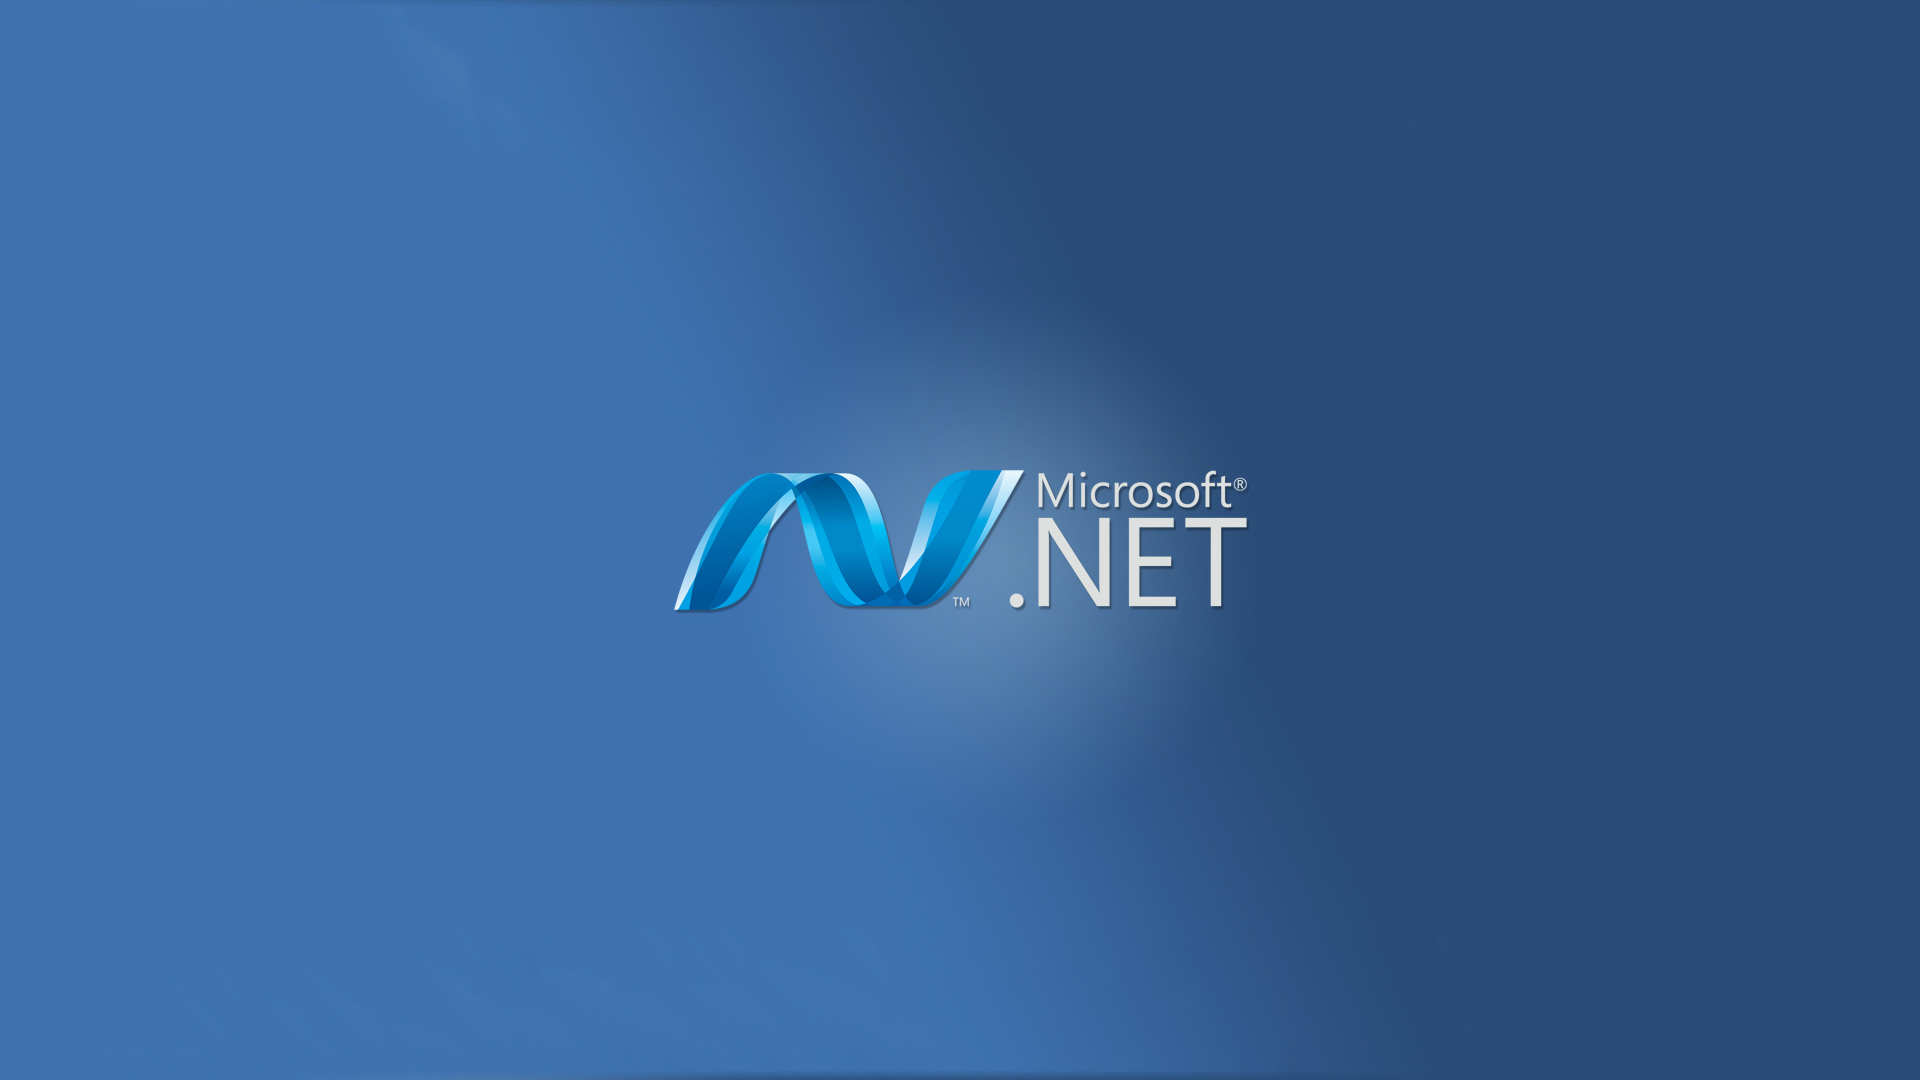 how to download microsoft net framework 1.1